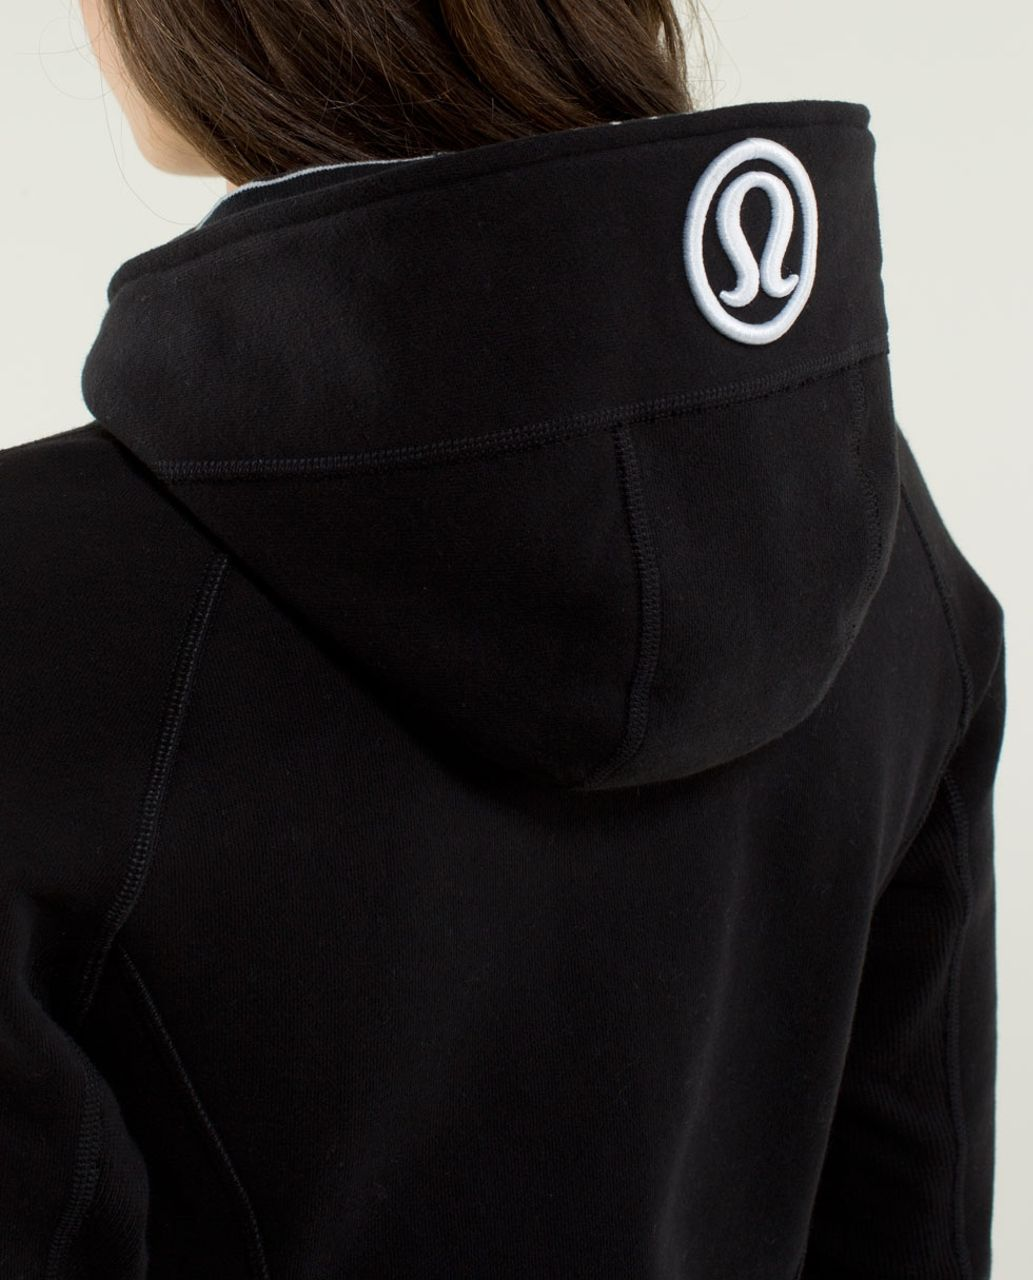 Lululemon Scuba Hoodie *Stretch (Lined Hood) - Black / Black / Parallel Stripe Black / White / Black / Parallel Stripe Blackwhite